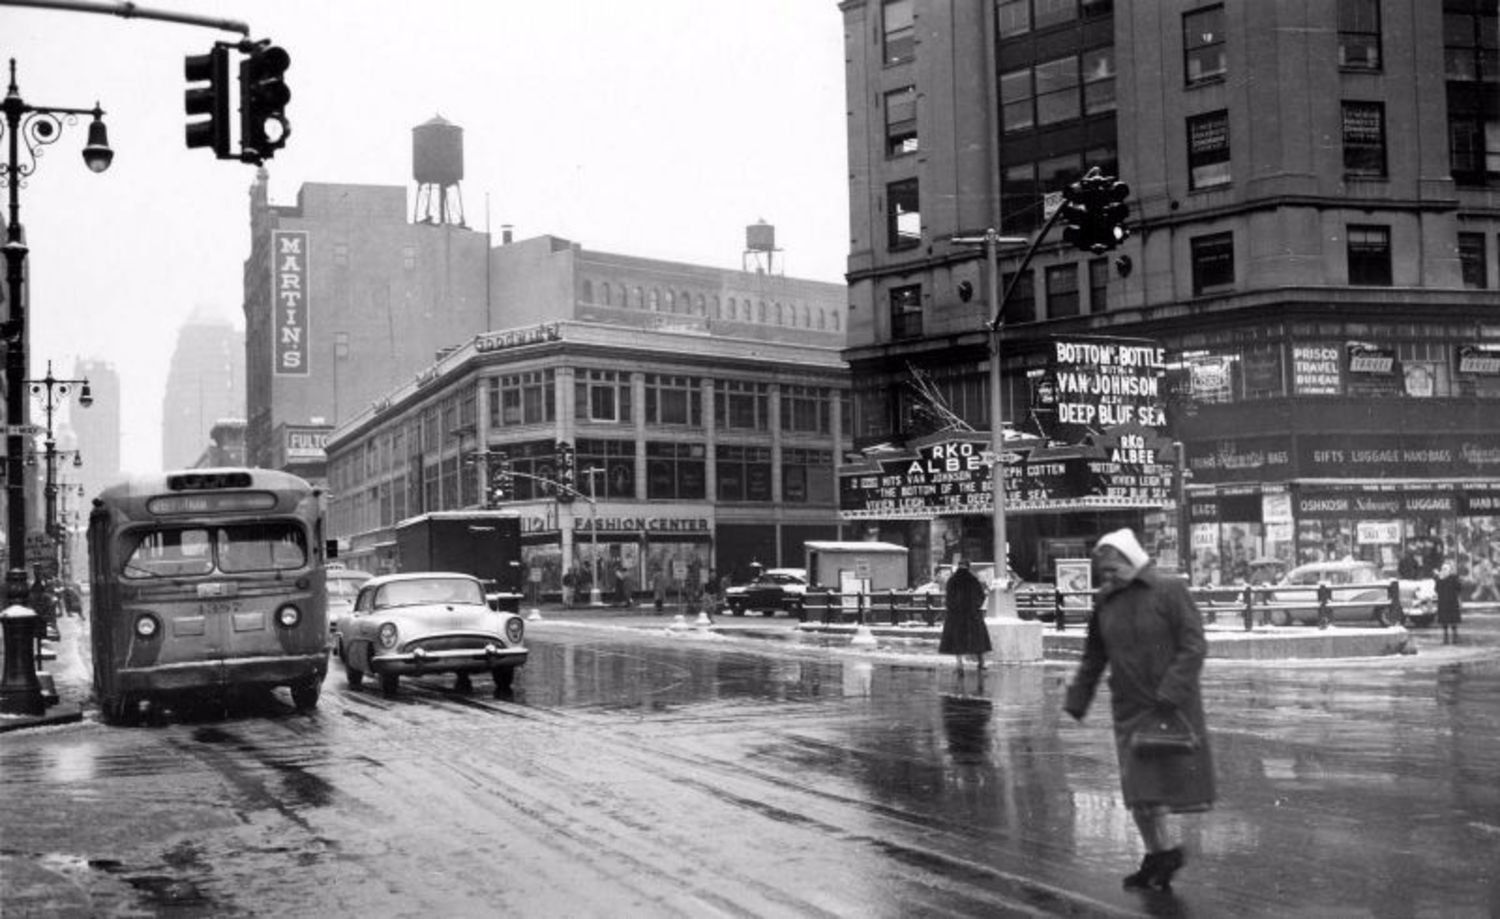 Fulton Street & Bond Street, Brooklyn, with a view of the RKO Albee Theater, 1956